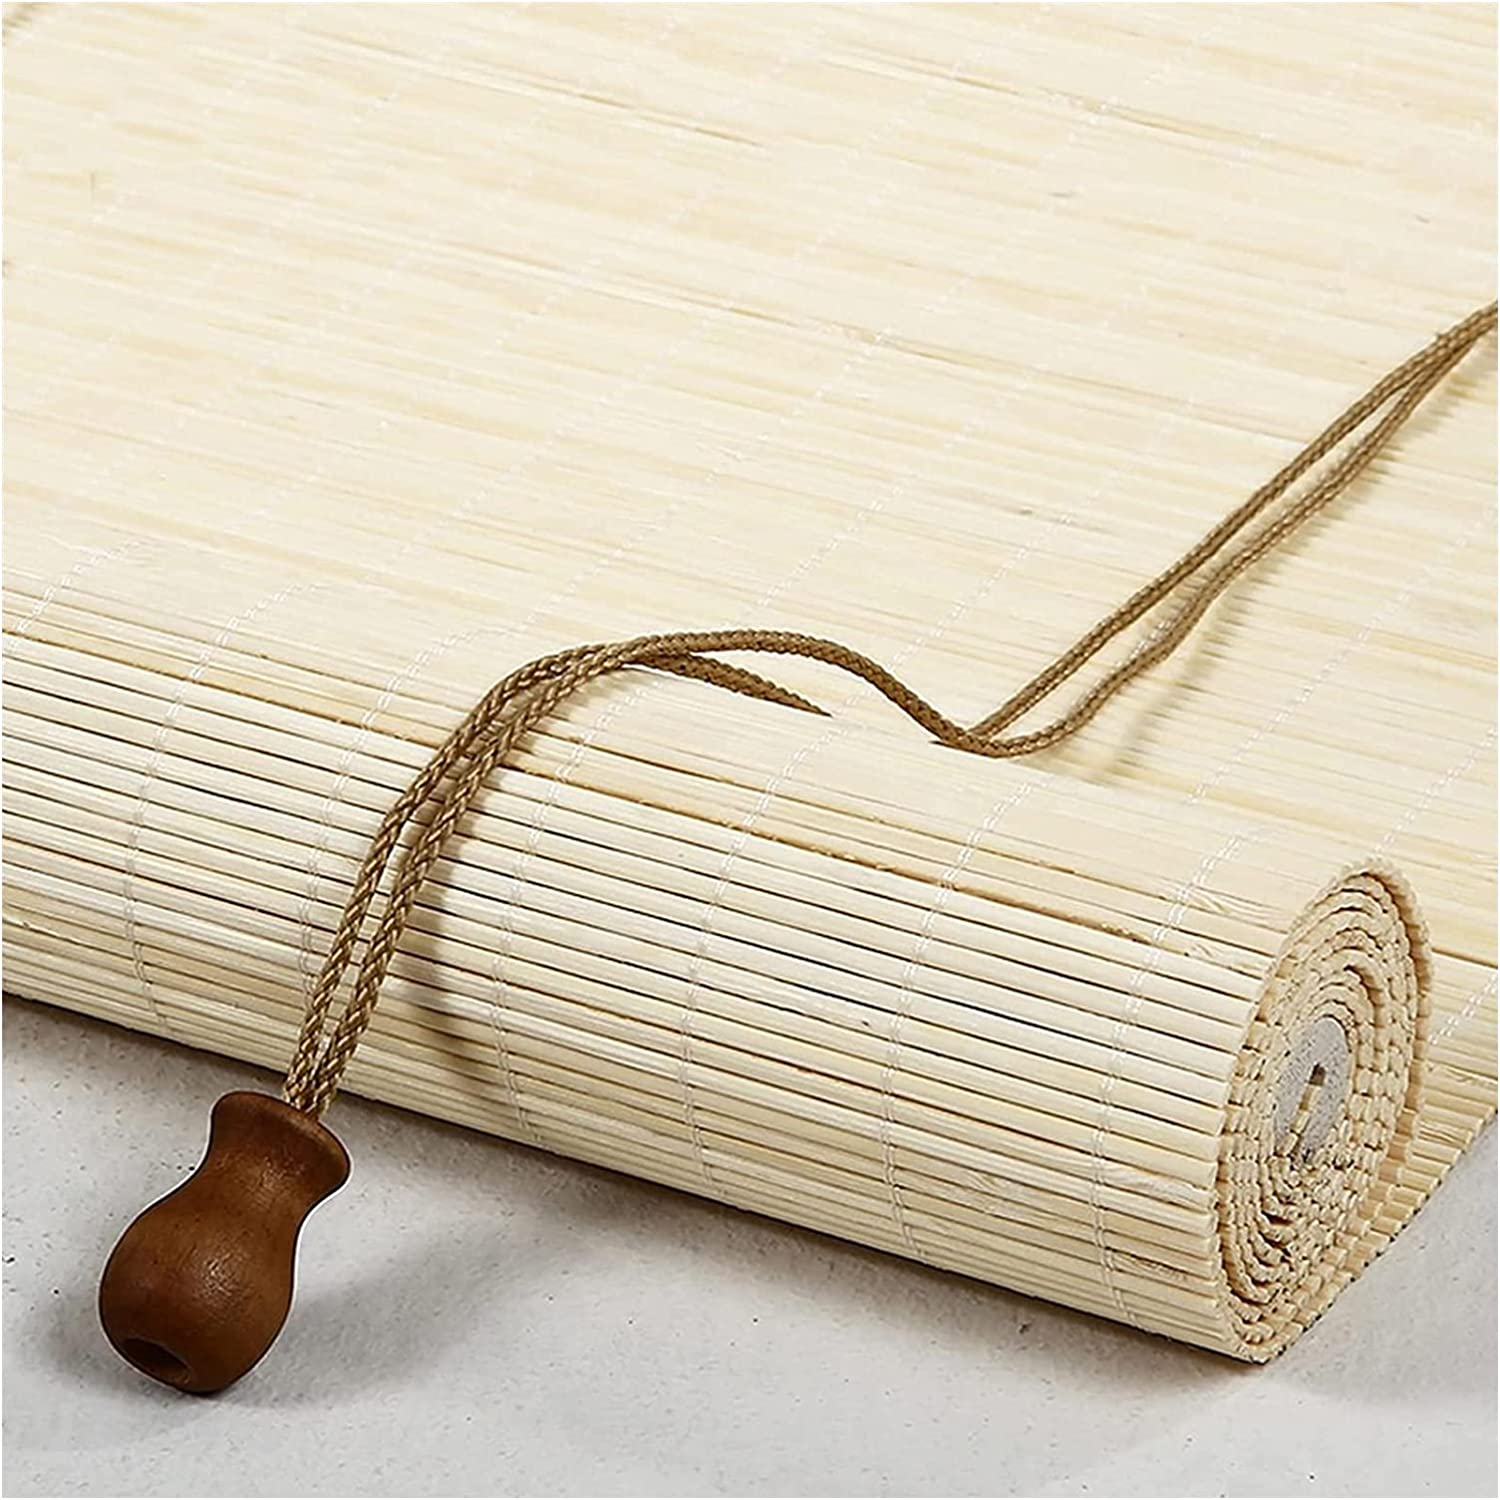 Bamboo Blinds for security Windows Hand Large-scale sale Woven Retro Home Blind Up B Roll